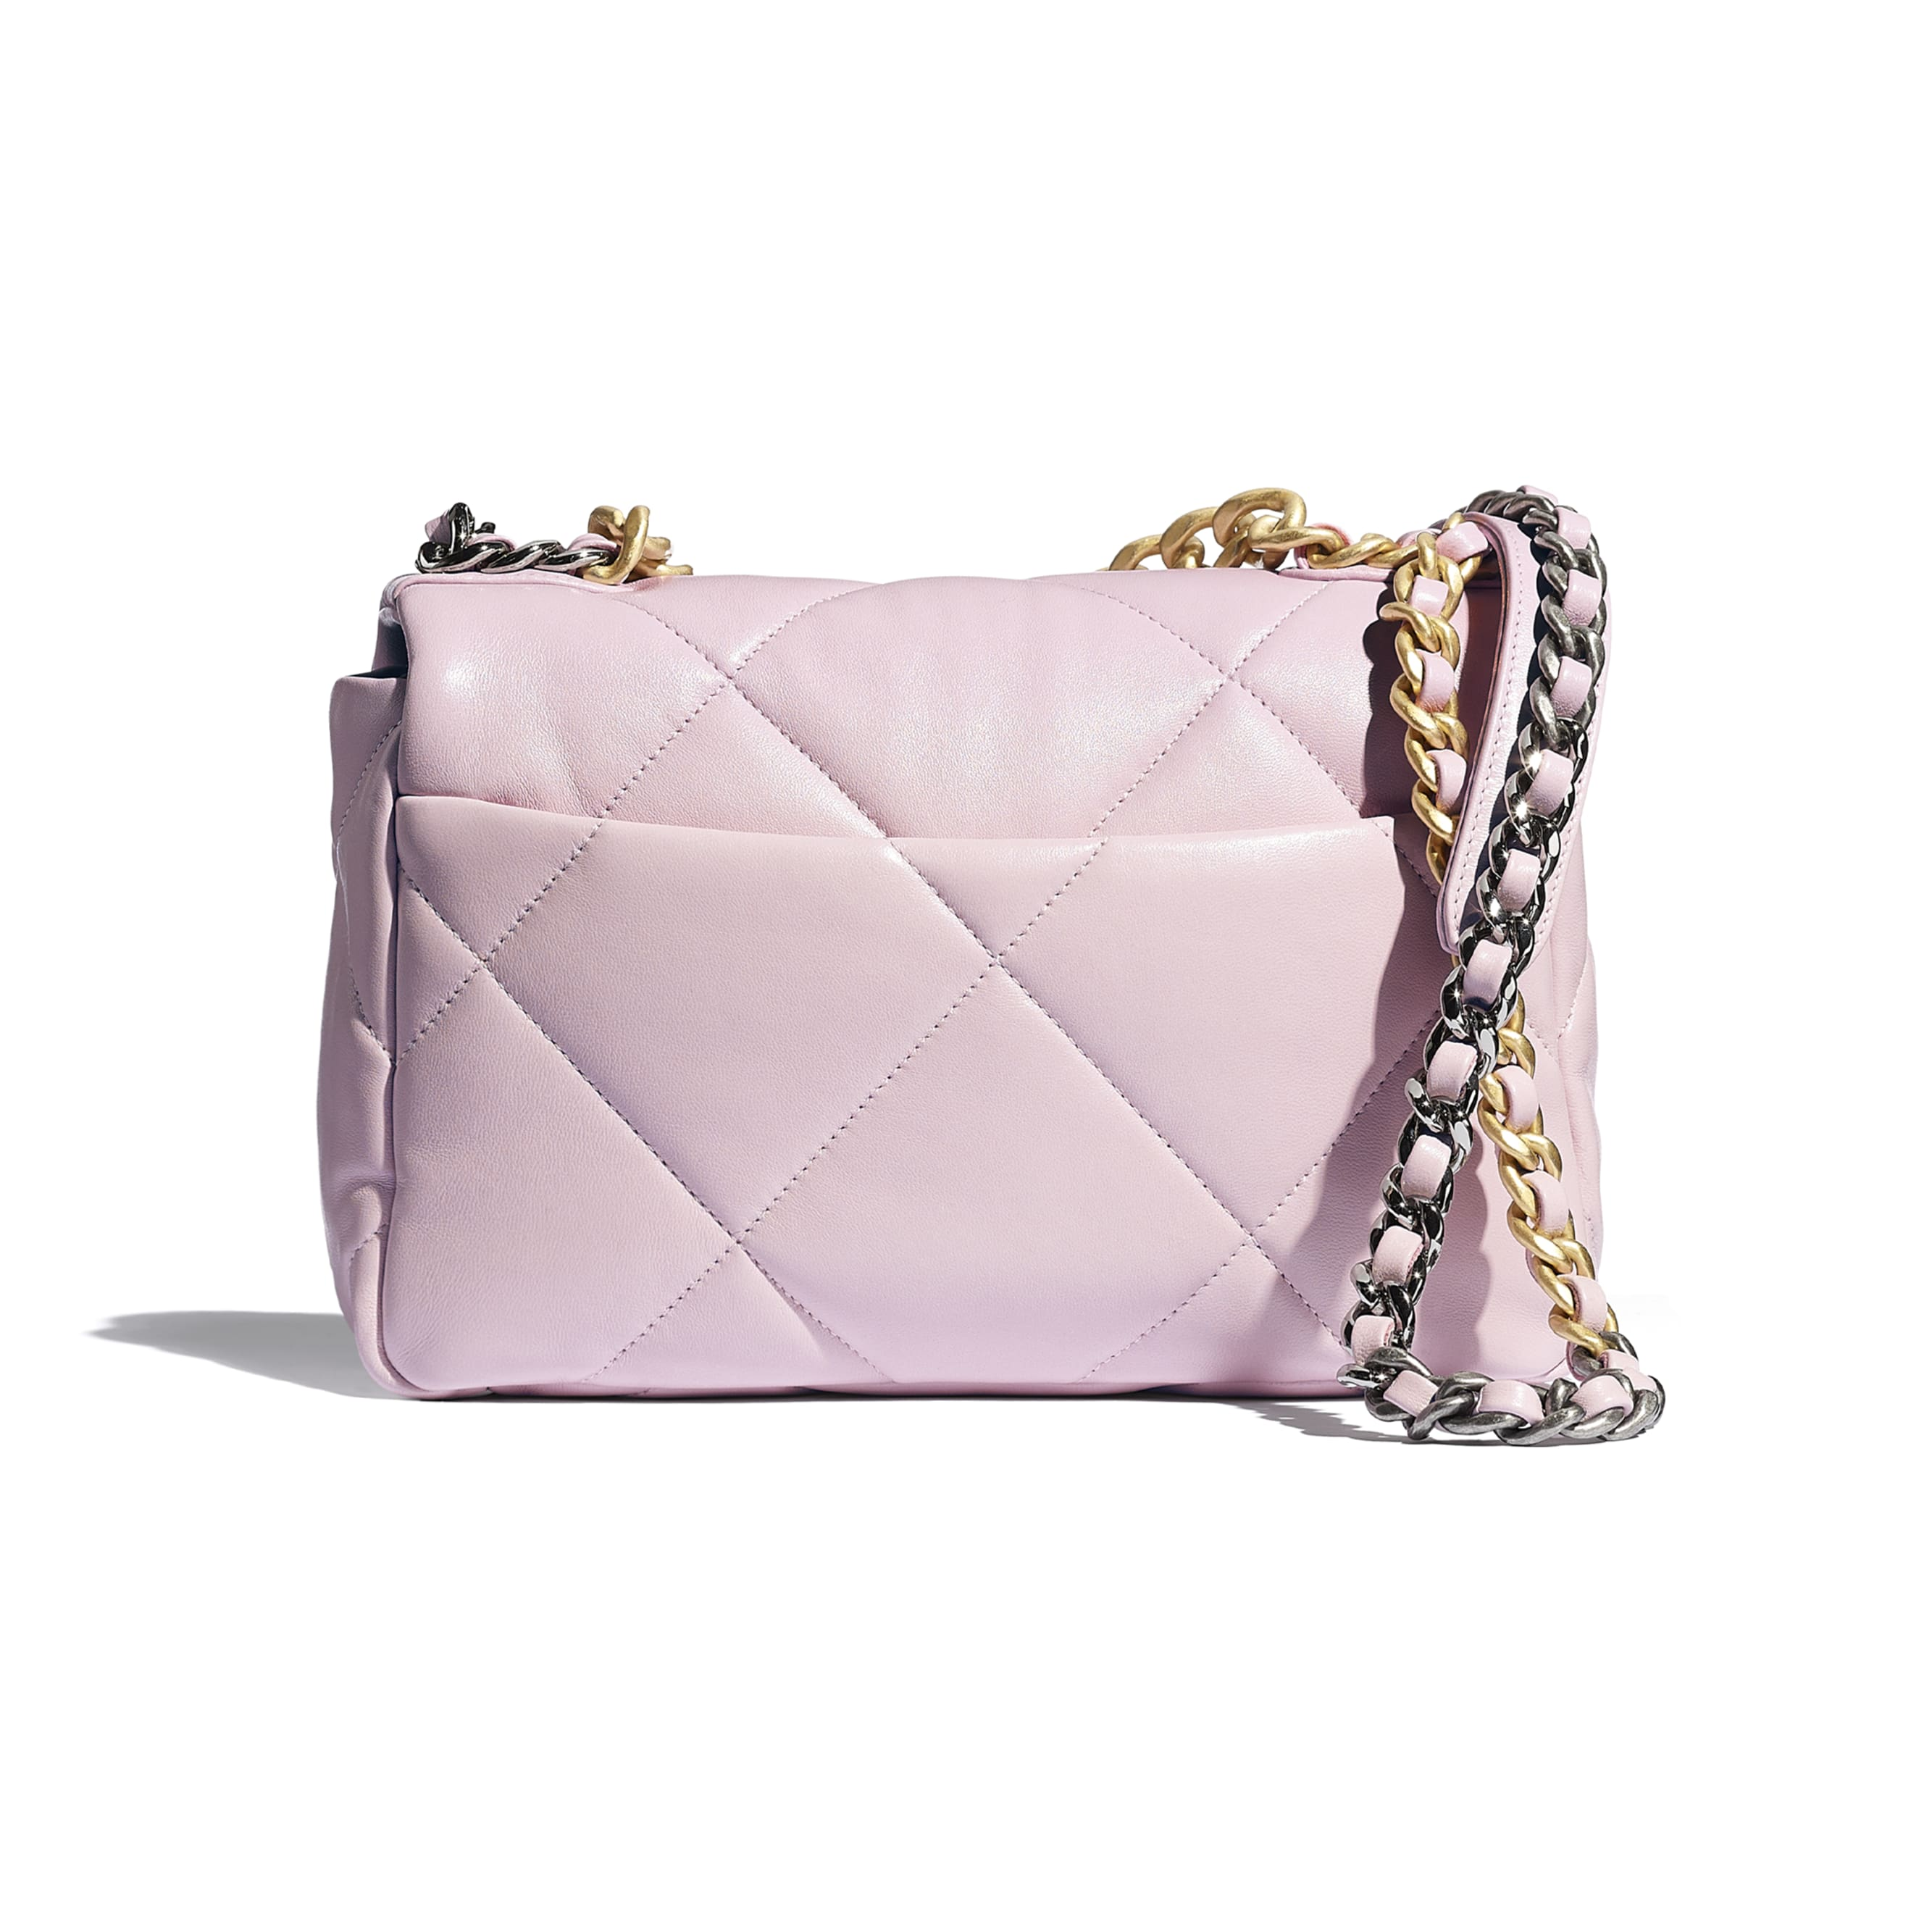 CHANEL 19 Flap Bag - Light Pink - Lambskin, Gold-Tone, Silver-Tone & Ruthenium-Finish Metal - CHANEL - Alternative view - see standard sized version